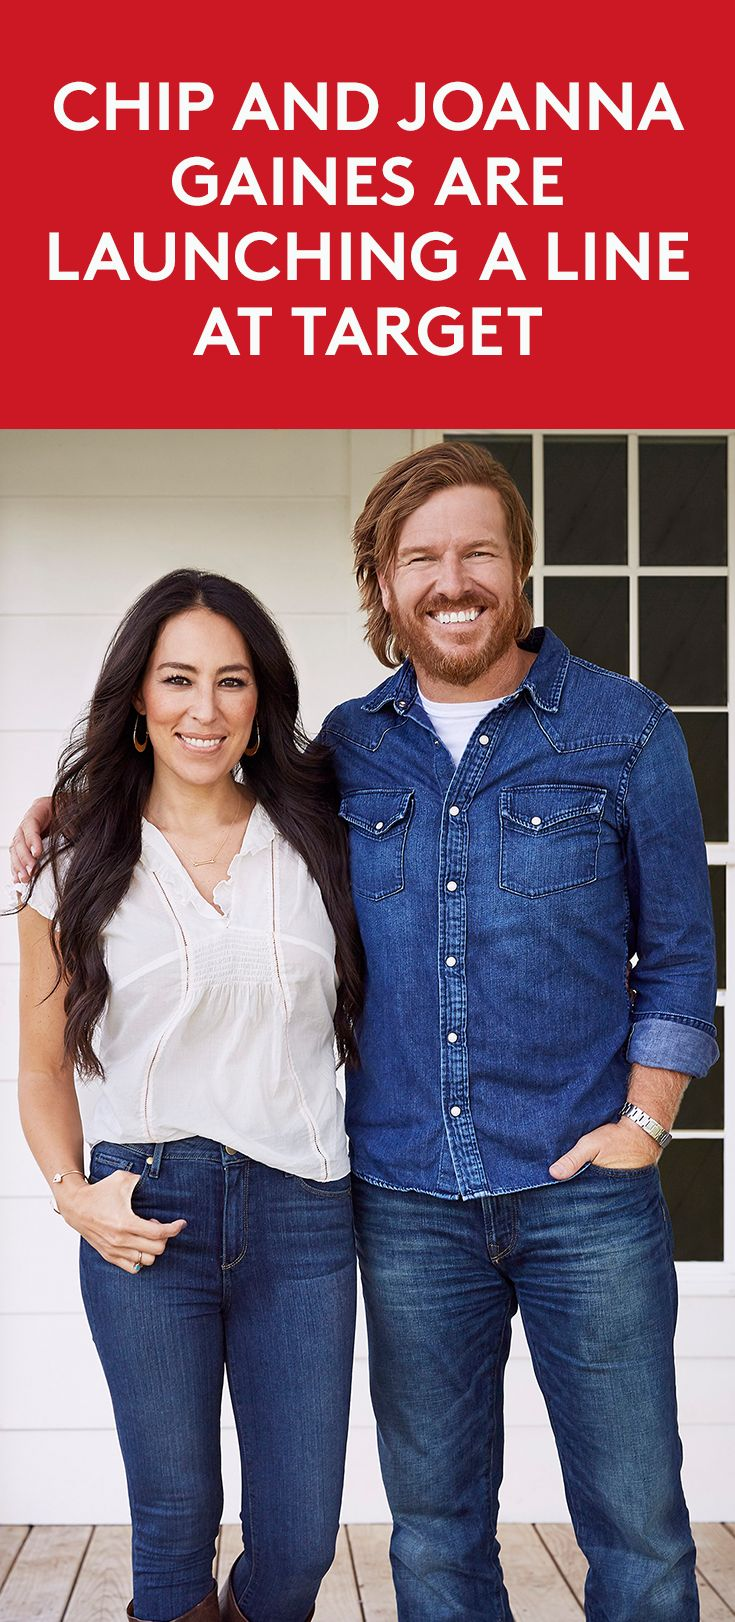 Chip and Joanna Gaines Are Launching a Line at Target |  The collection hits stores November 5th.